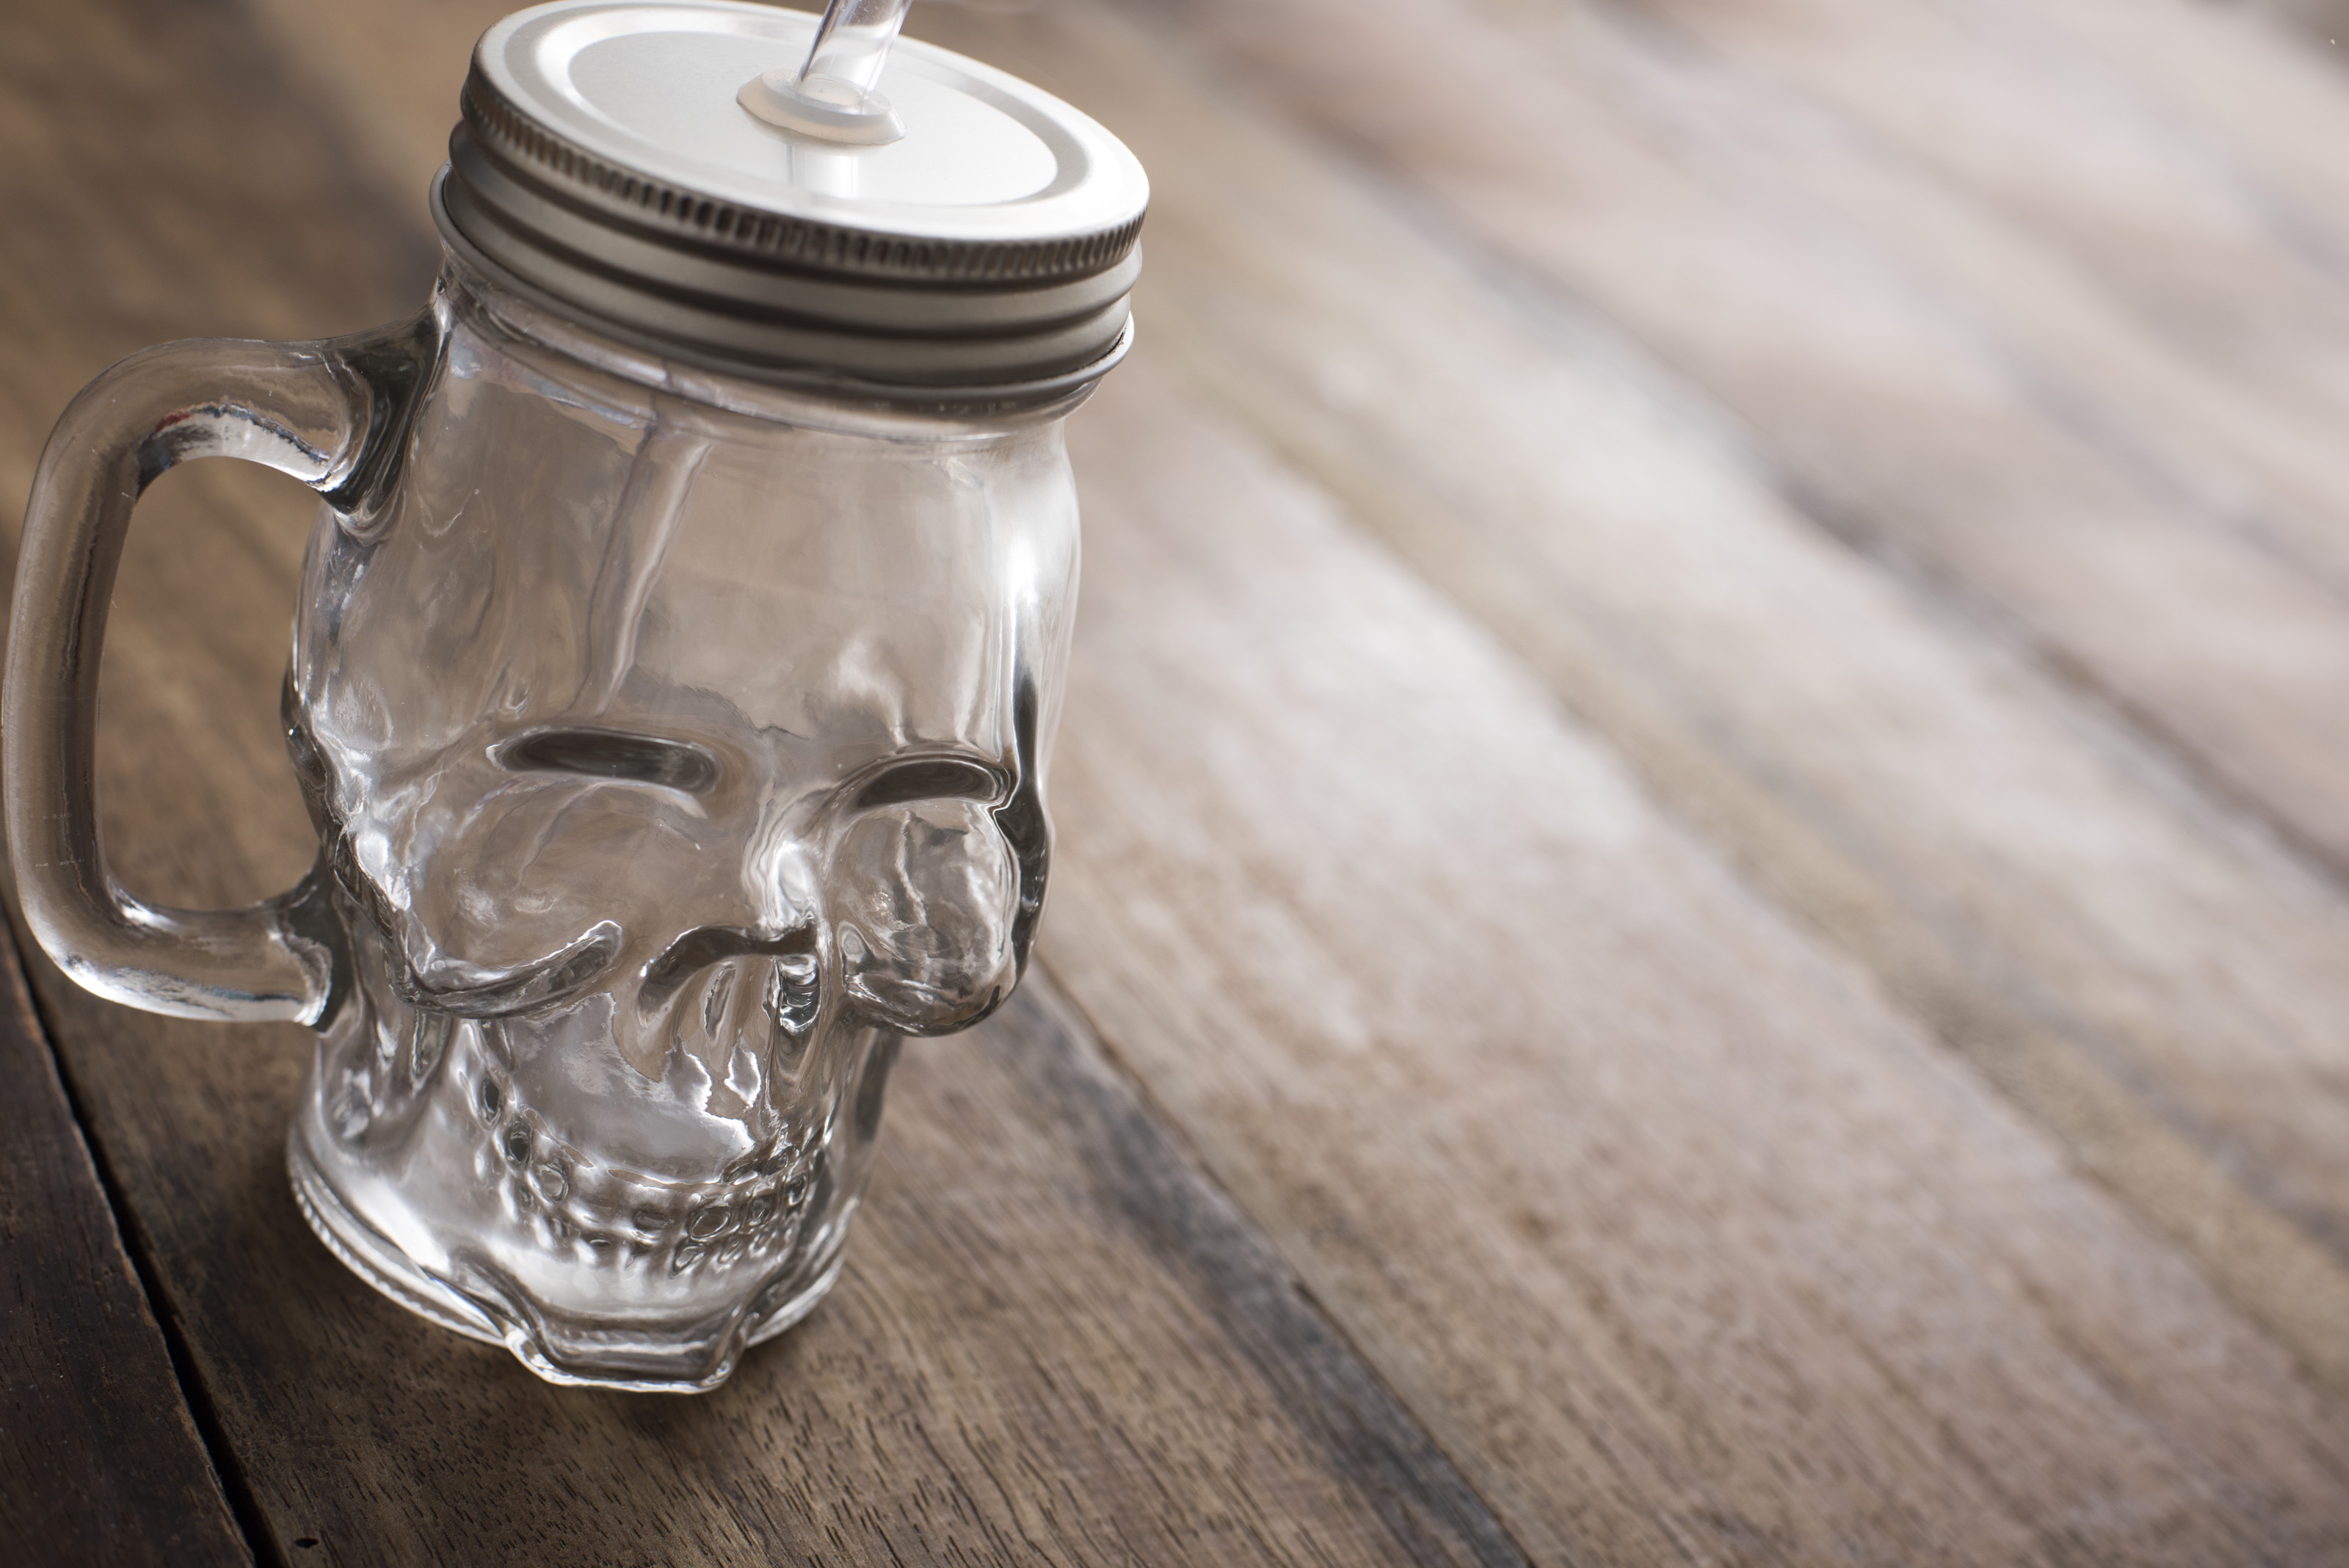 Novelty glass mason jar with lid shaped like scull having been placed on a wooden table